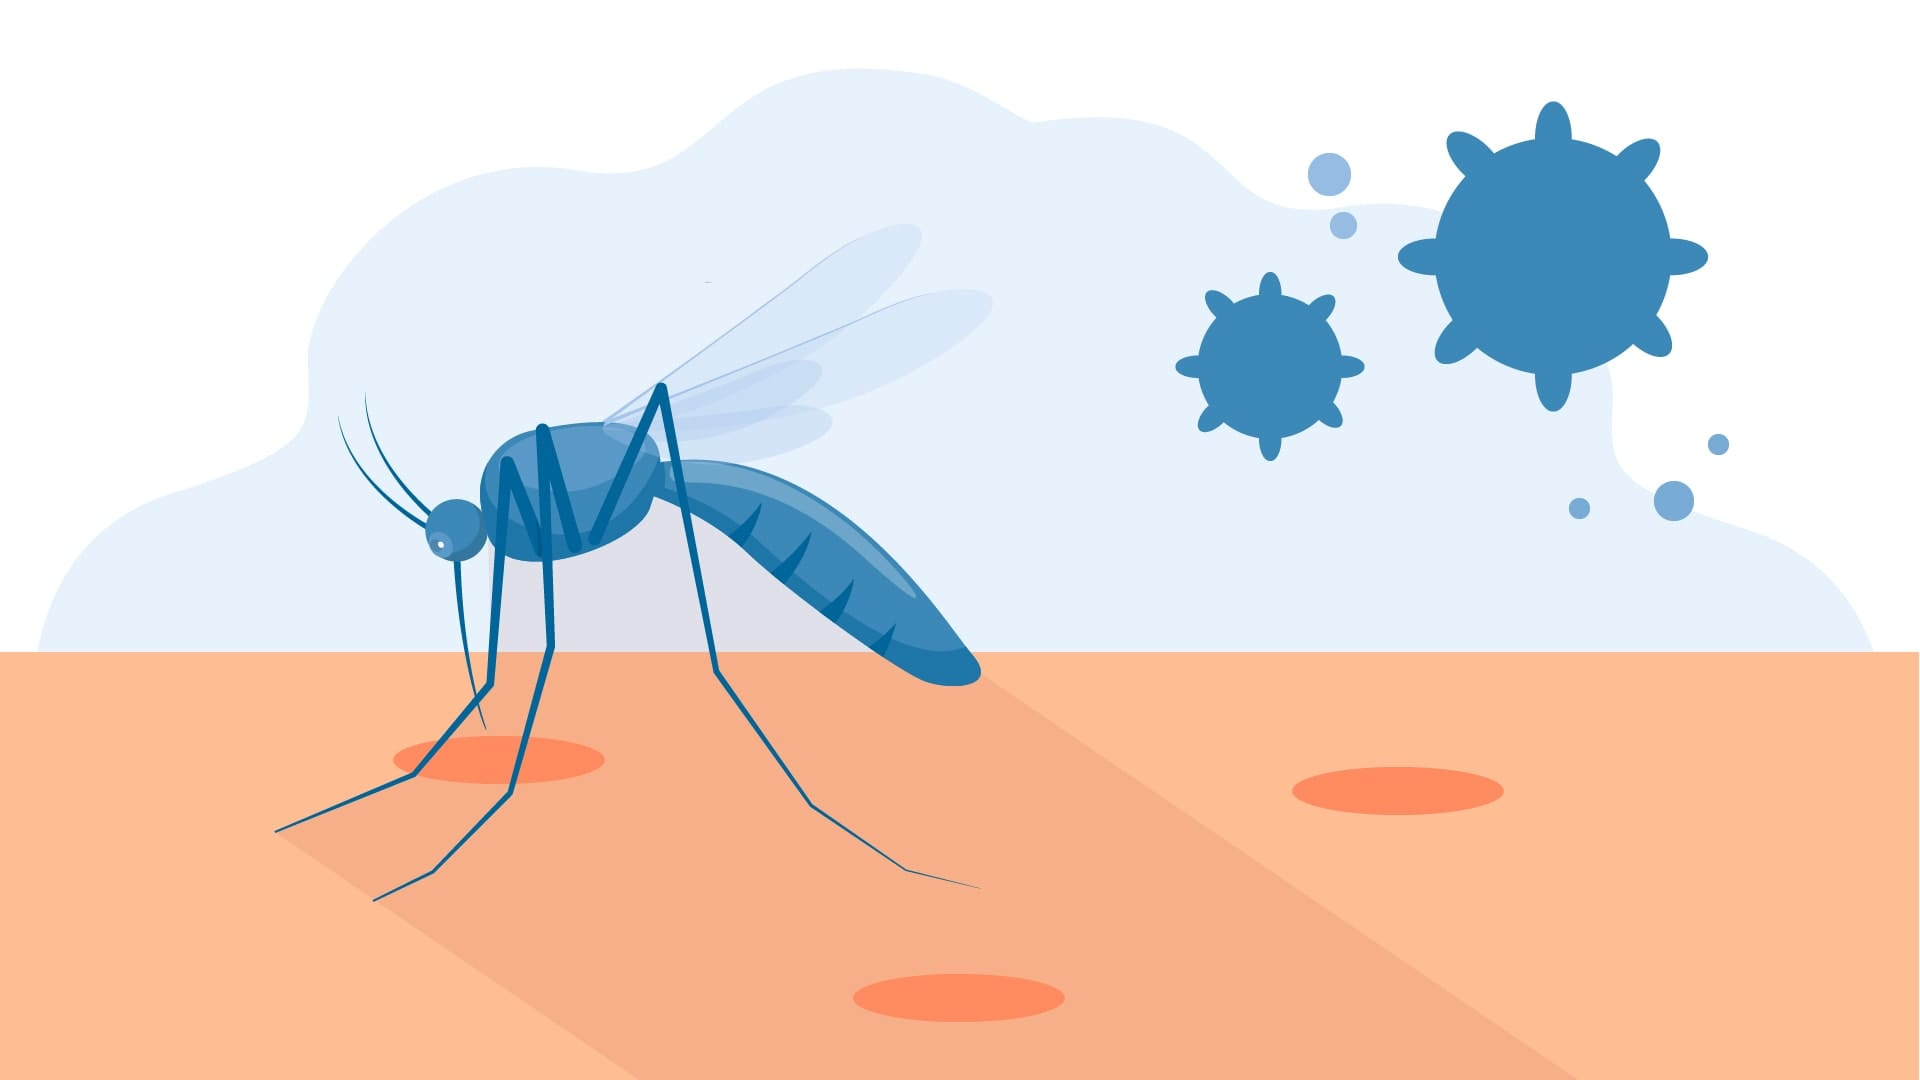 An illustration of a mosquito biting someone's arm, next to an illustration of HIV